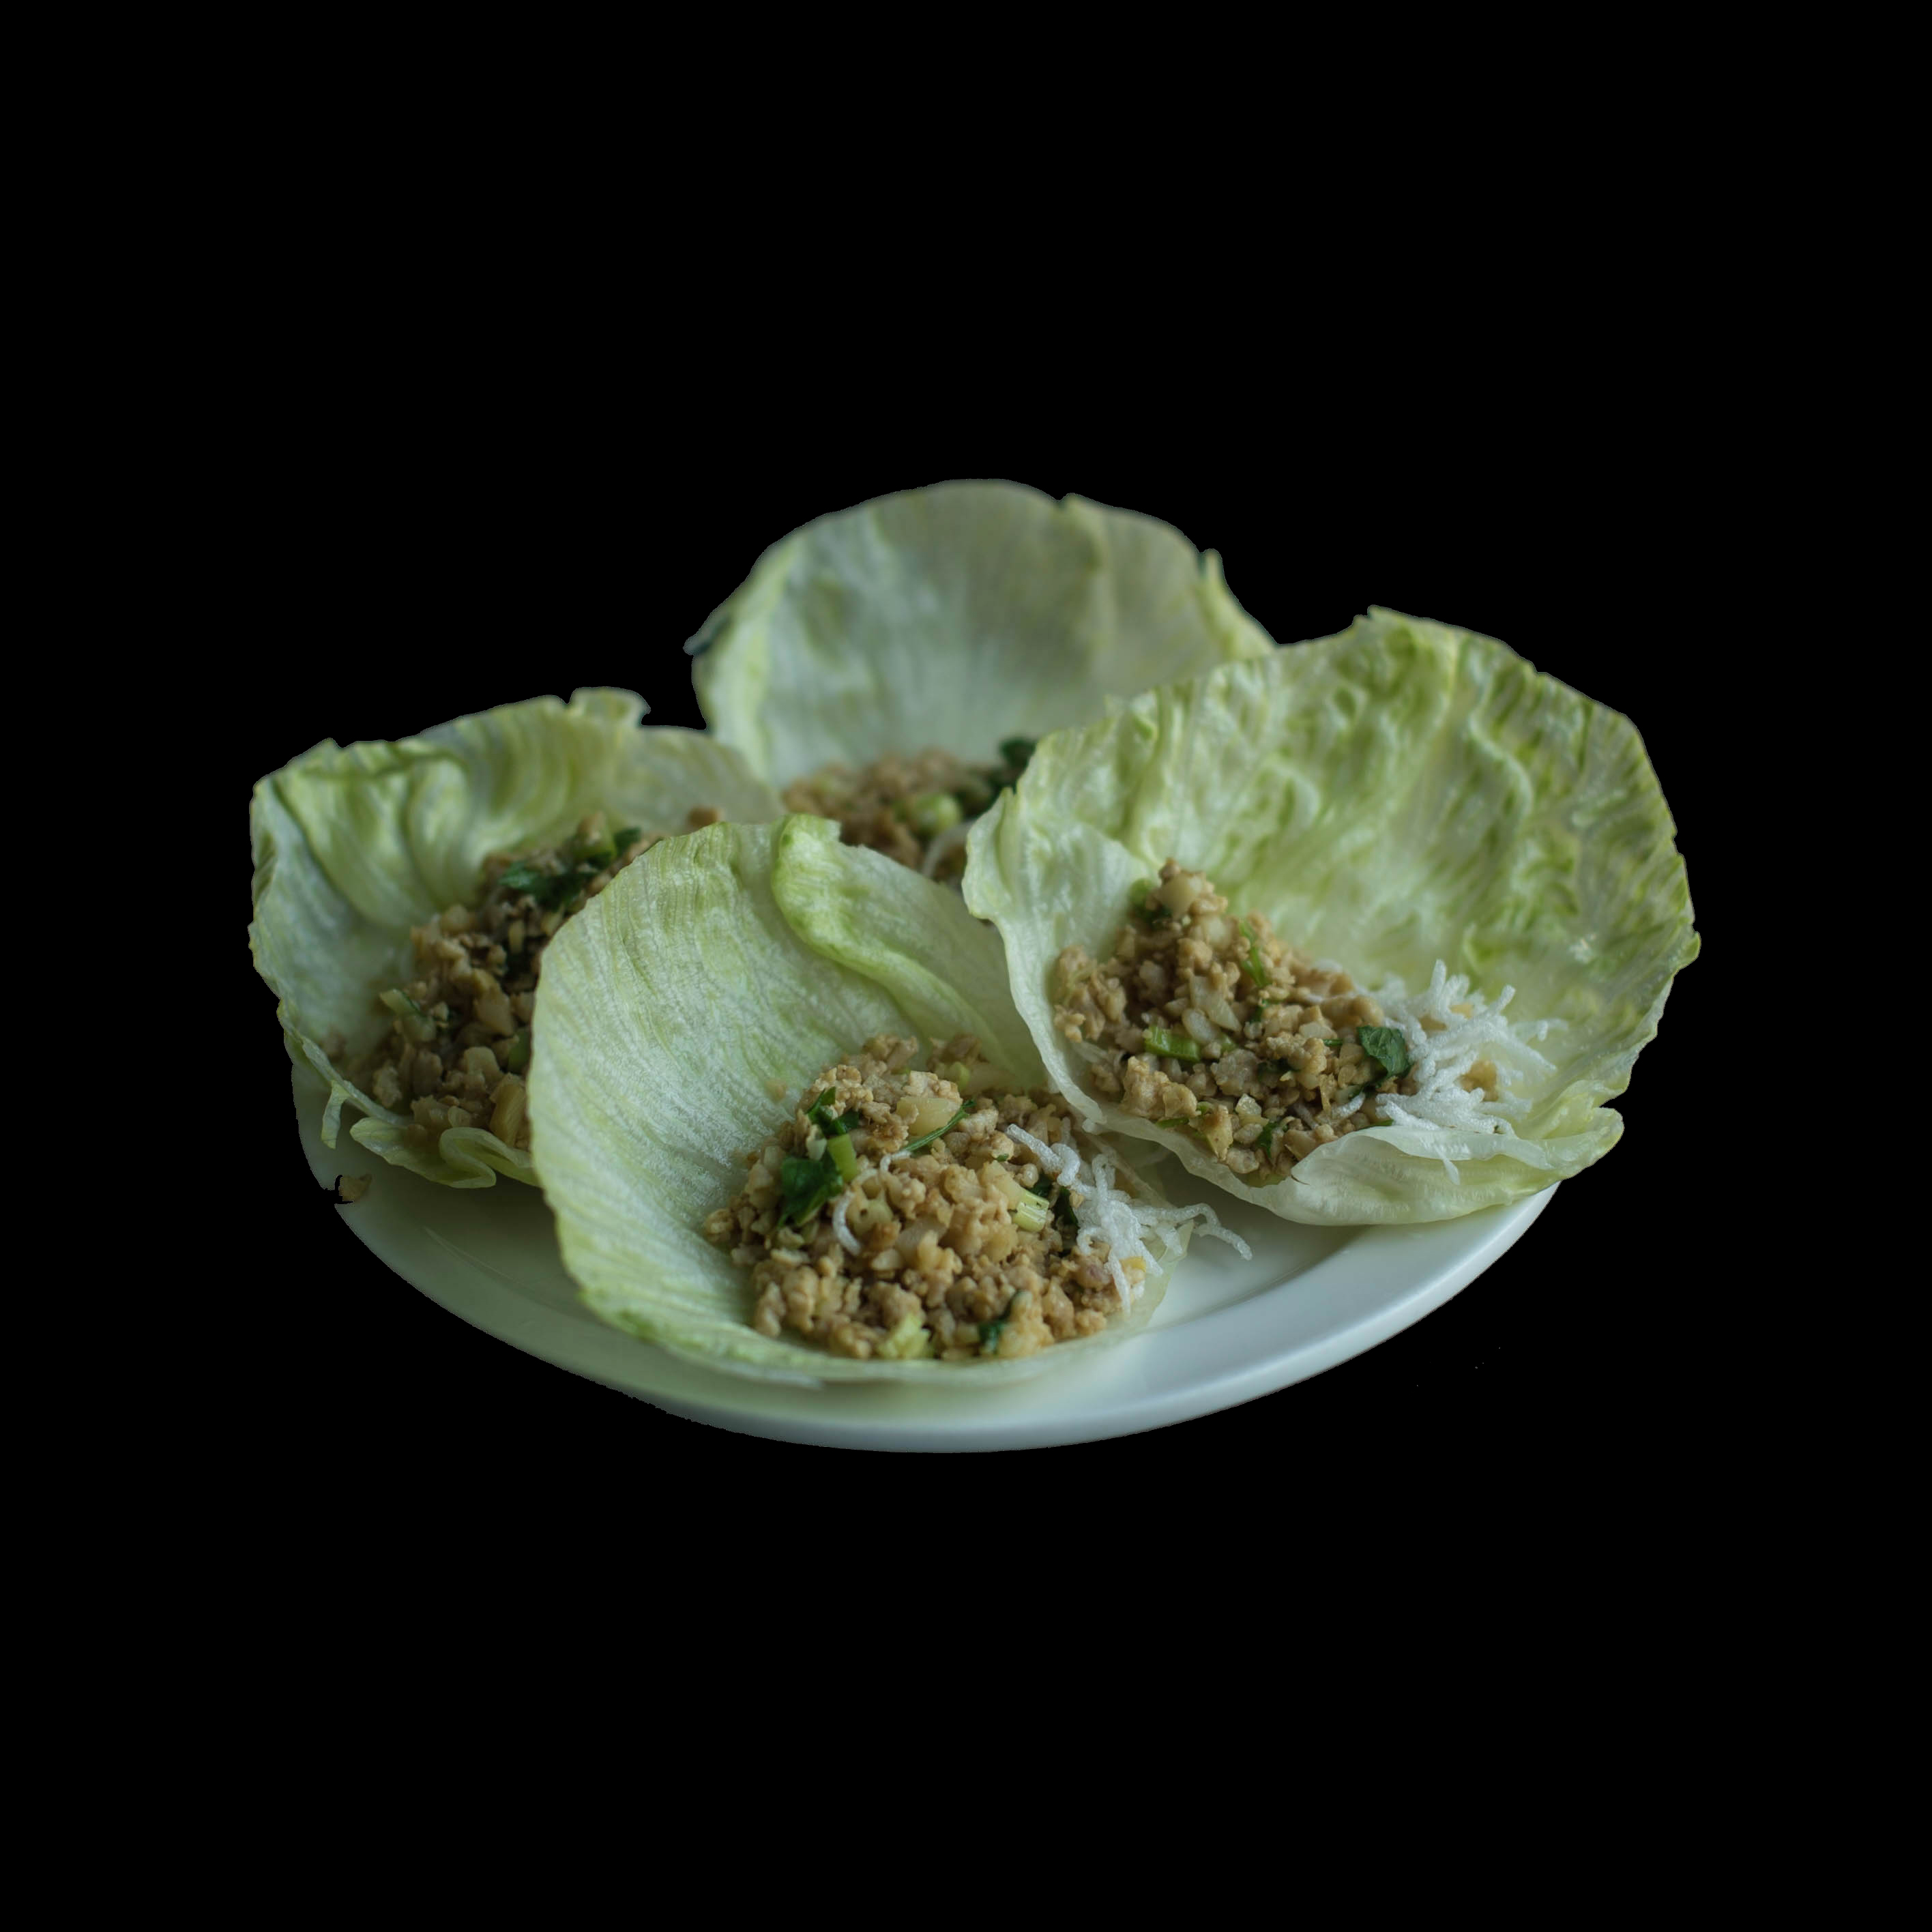 40. 鸡松肉卷生菜 Minced Chicken w/ Lettuce Wrap Image